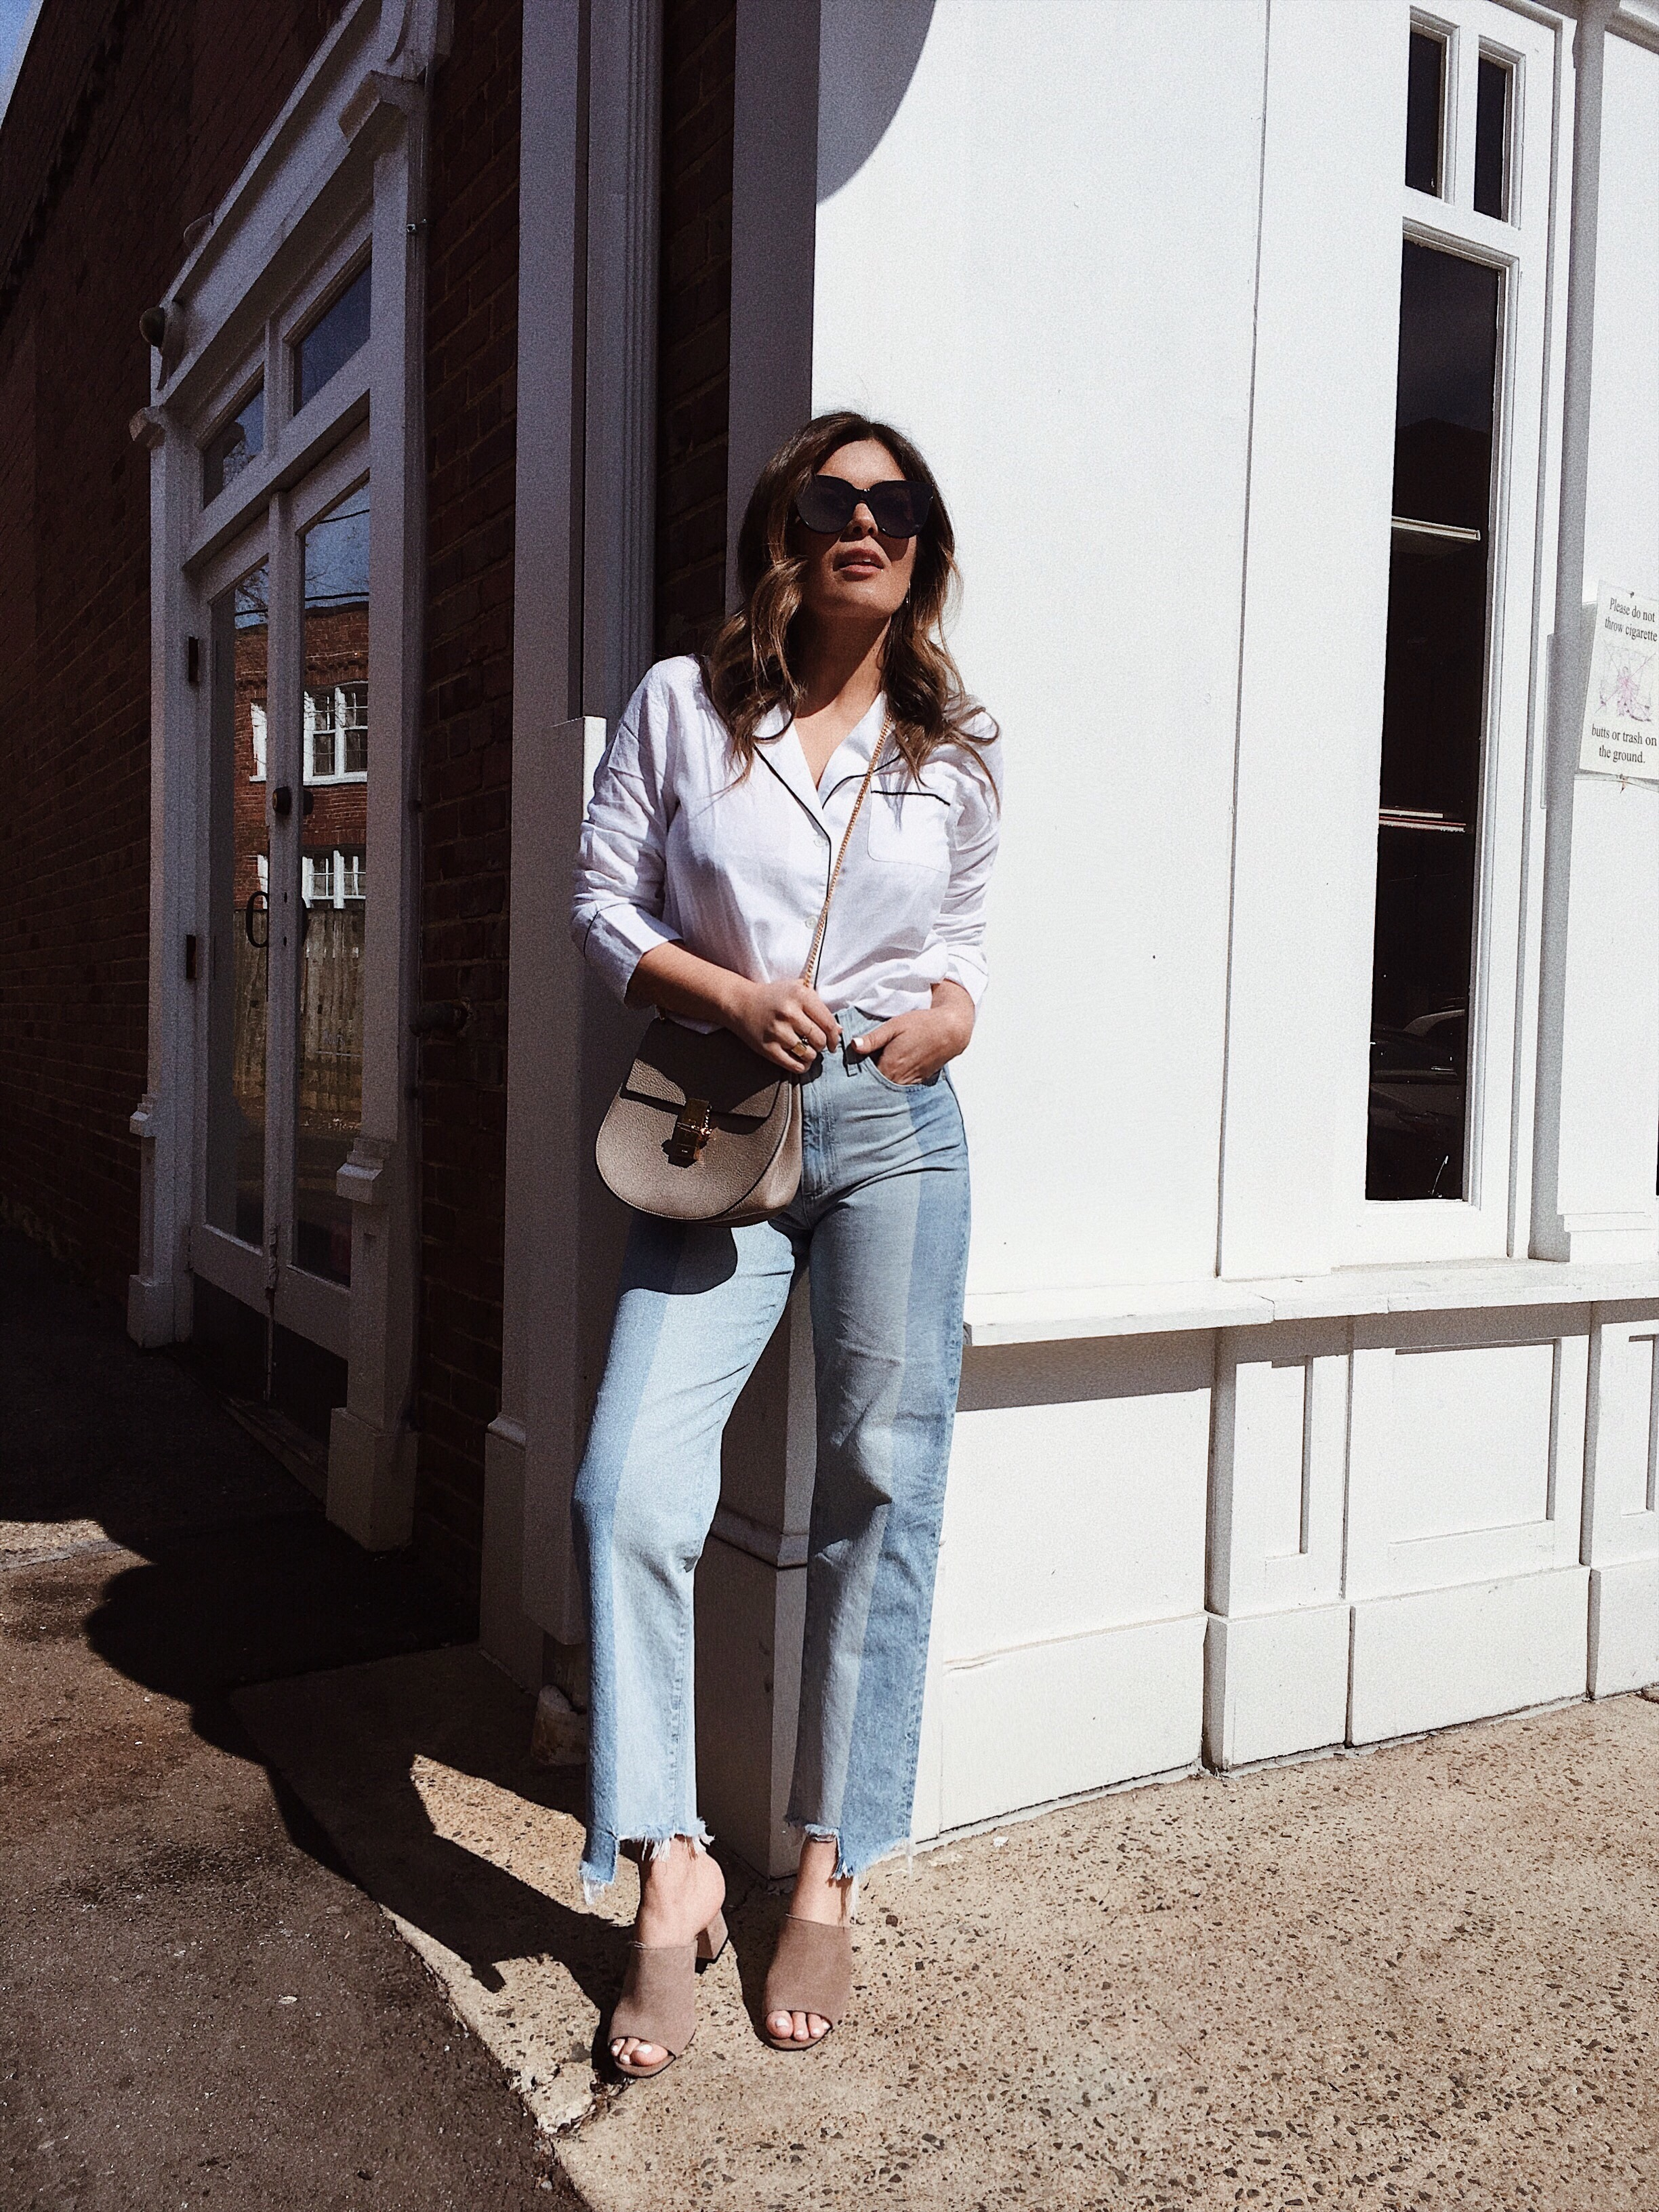 5 Denim Trends To Try - Two Tone